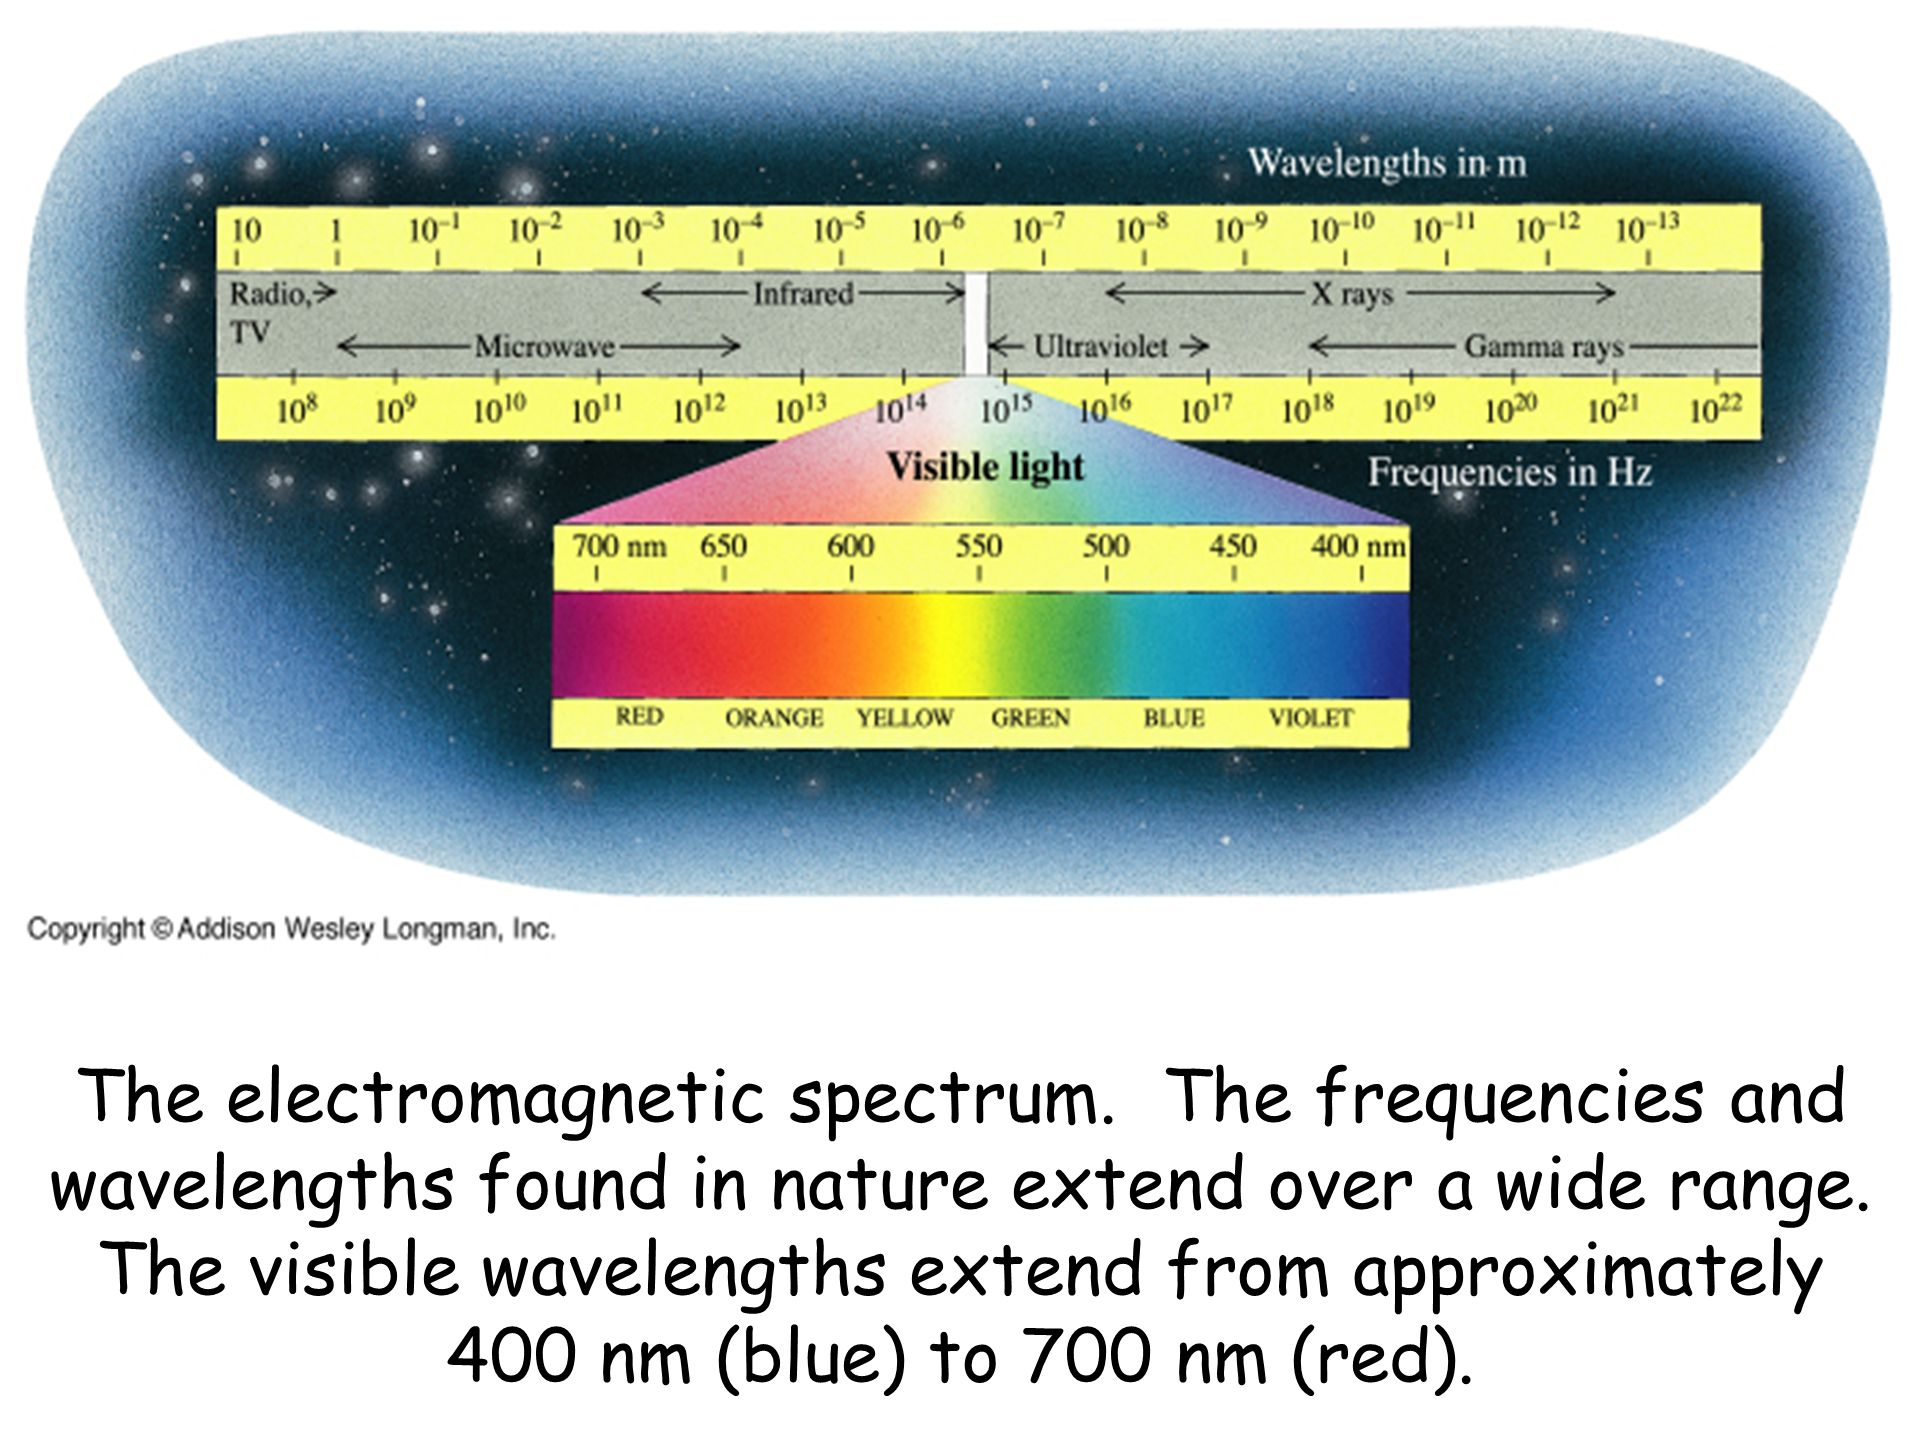 The electromagnetic spectrum. The frequencies and wavelengths found in nature extend over a wide range. The visible wavelengths extend from approximat